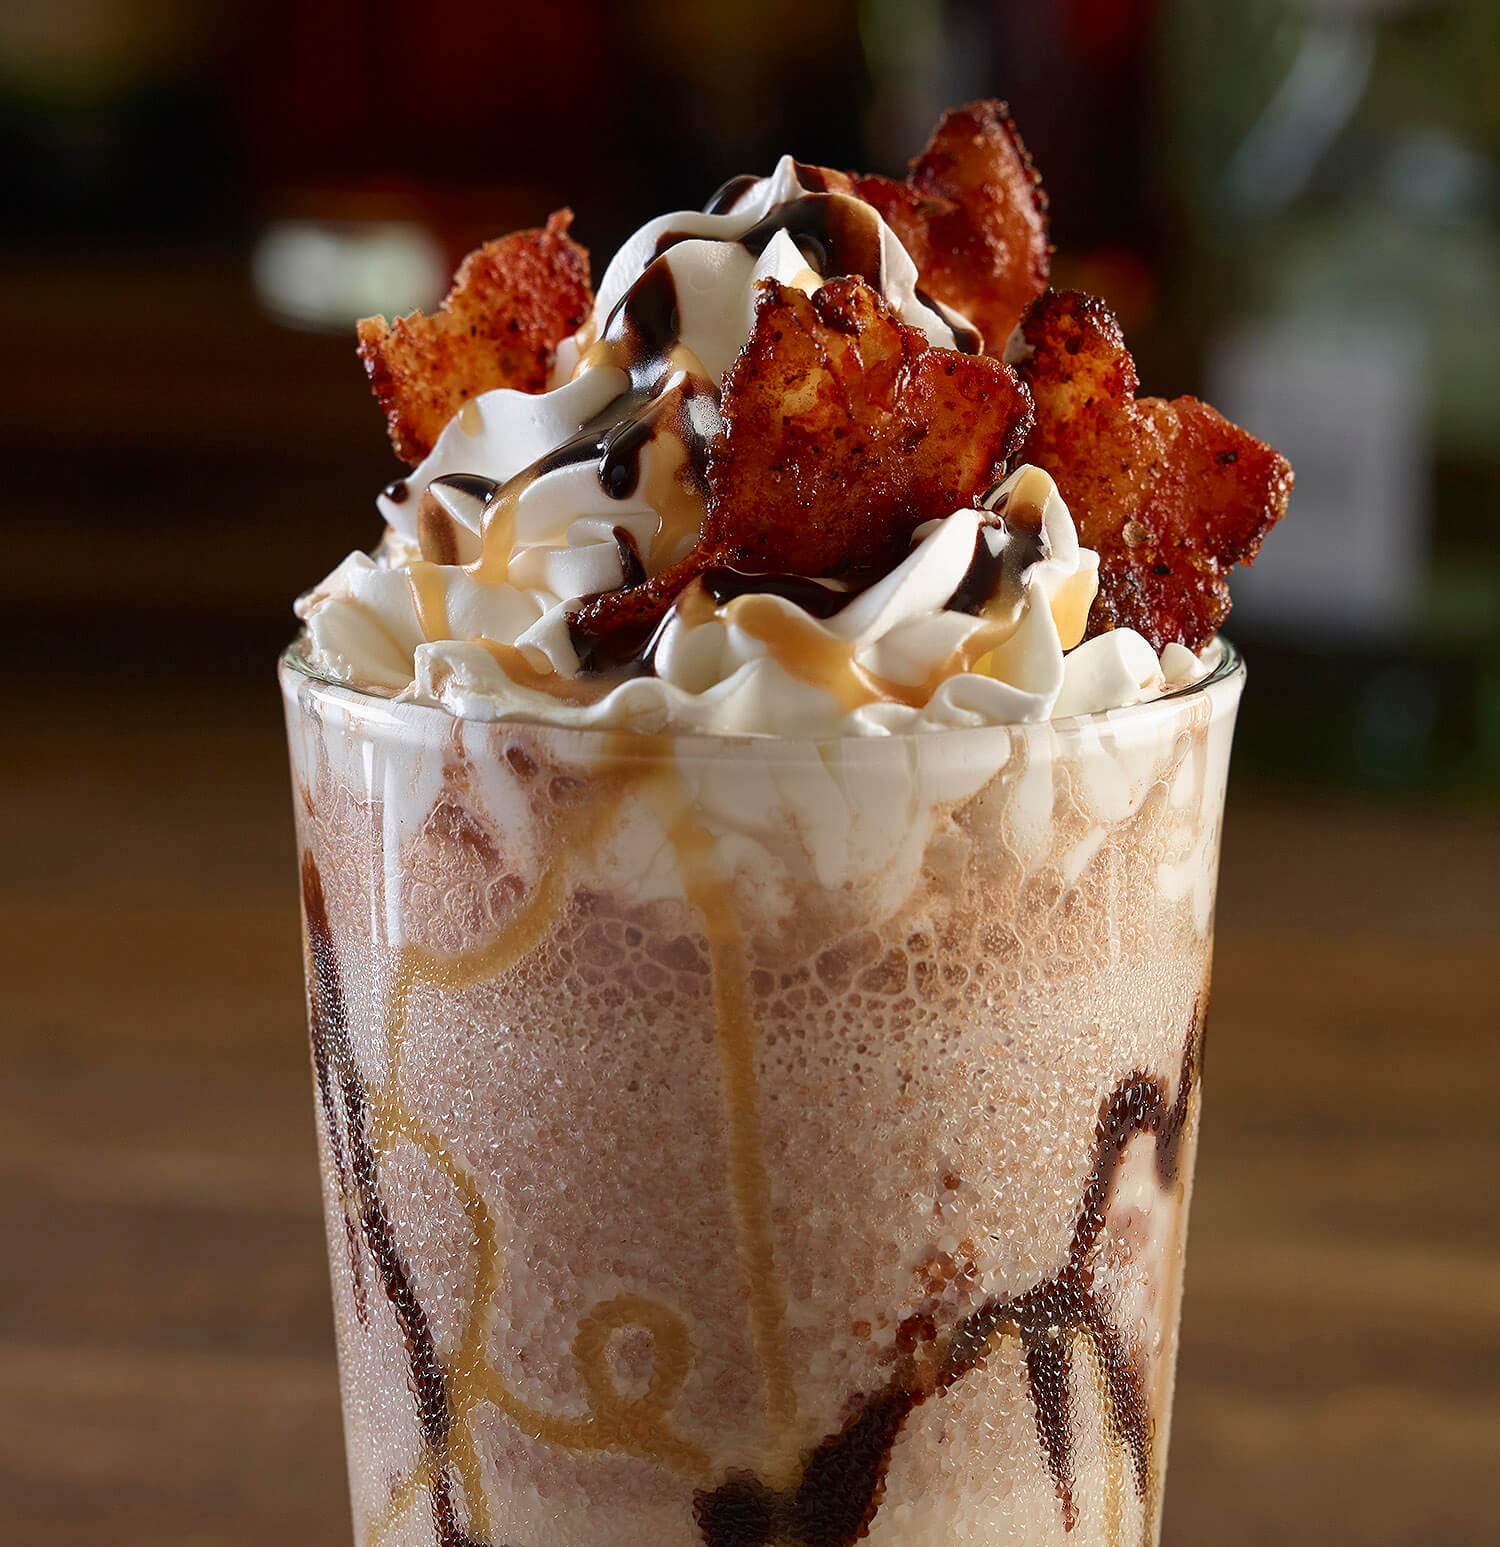 Hard Rock Cafe Twist and Shout Shake